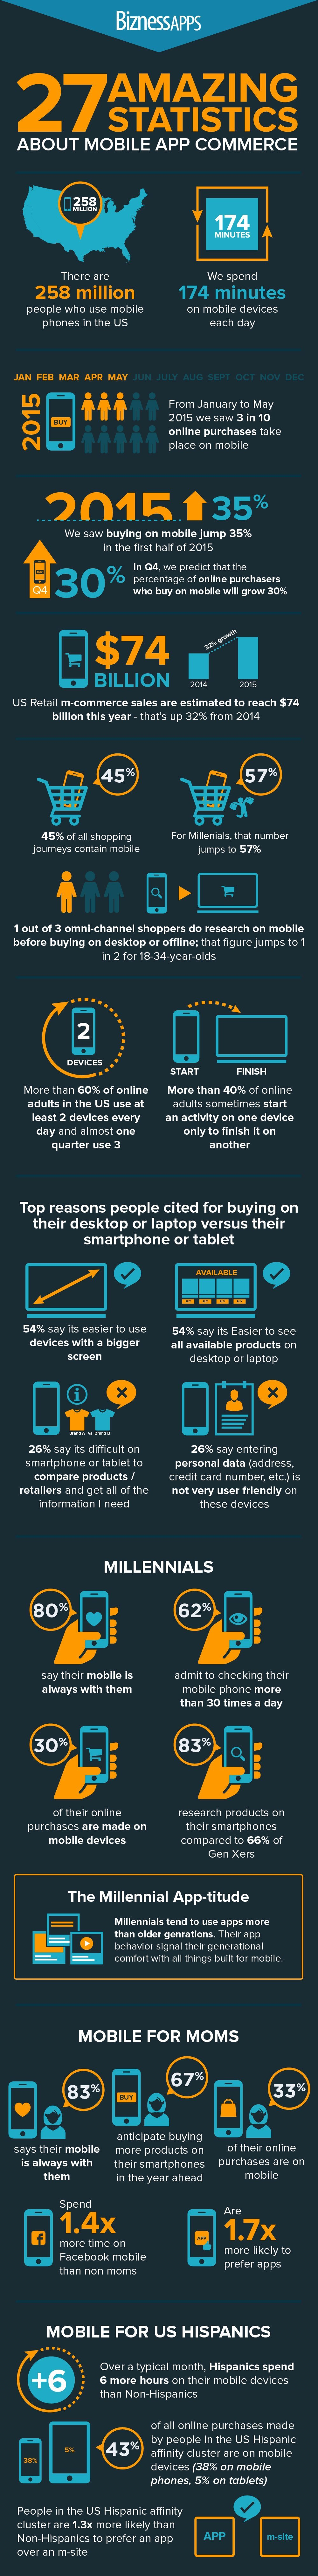 The Mobile App Industry of Today